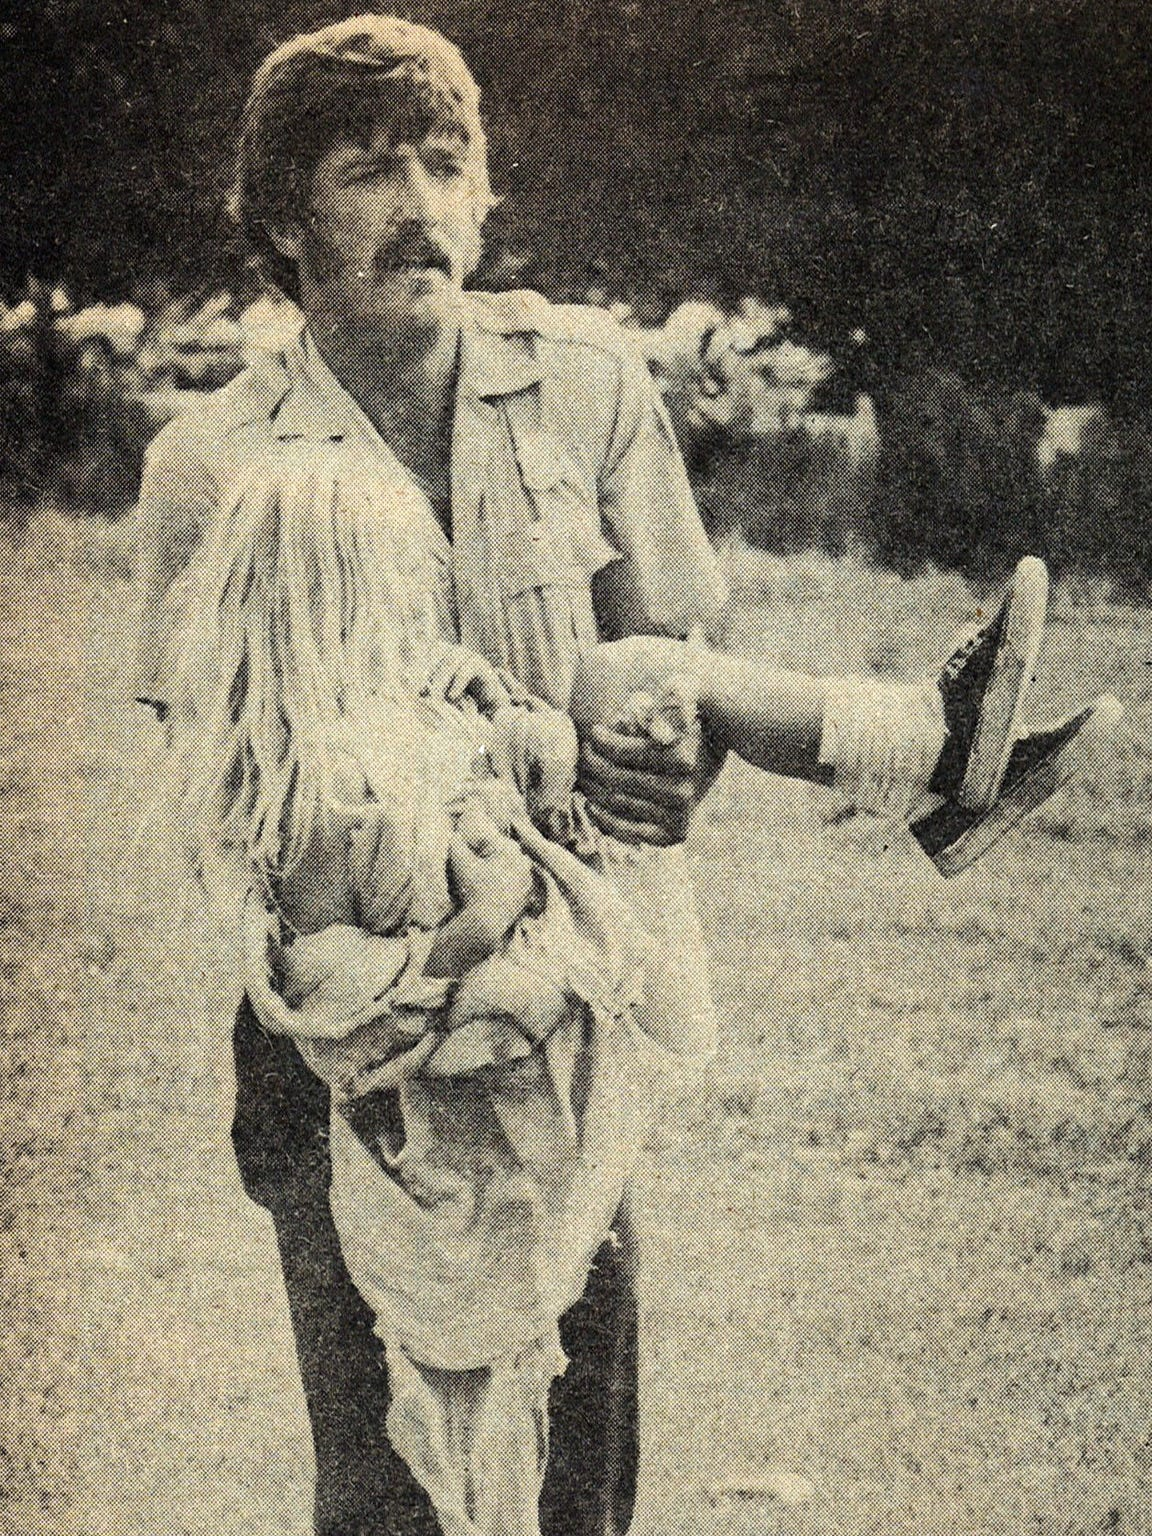 A volunteer carries a young girl to an aid station in the aftermath of the July 31, 1976 Big Thompson Flood.